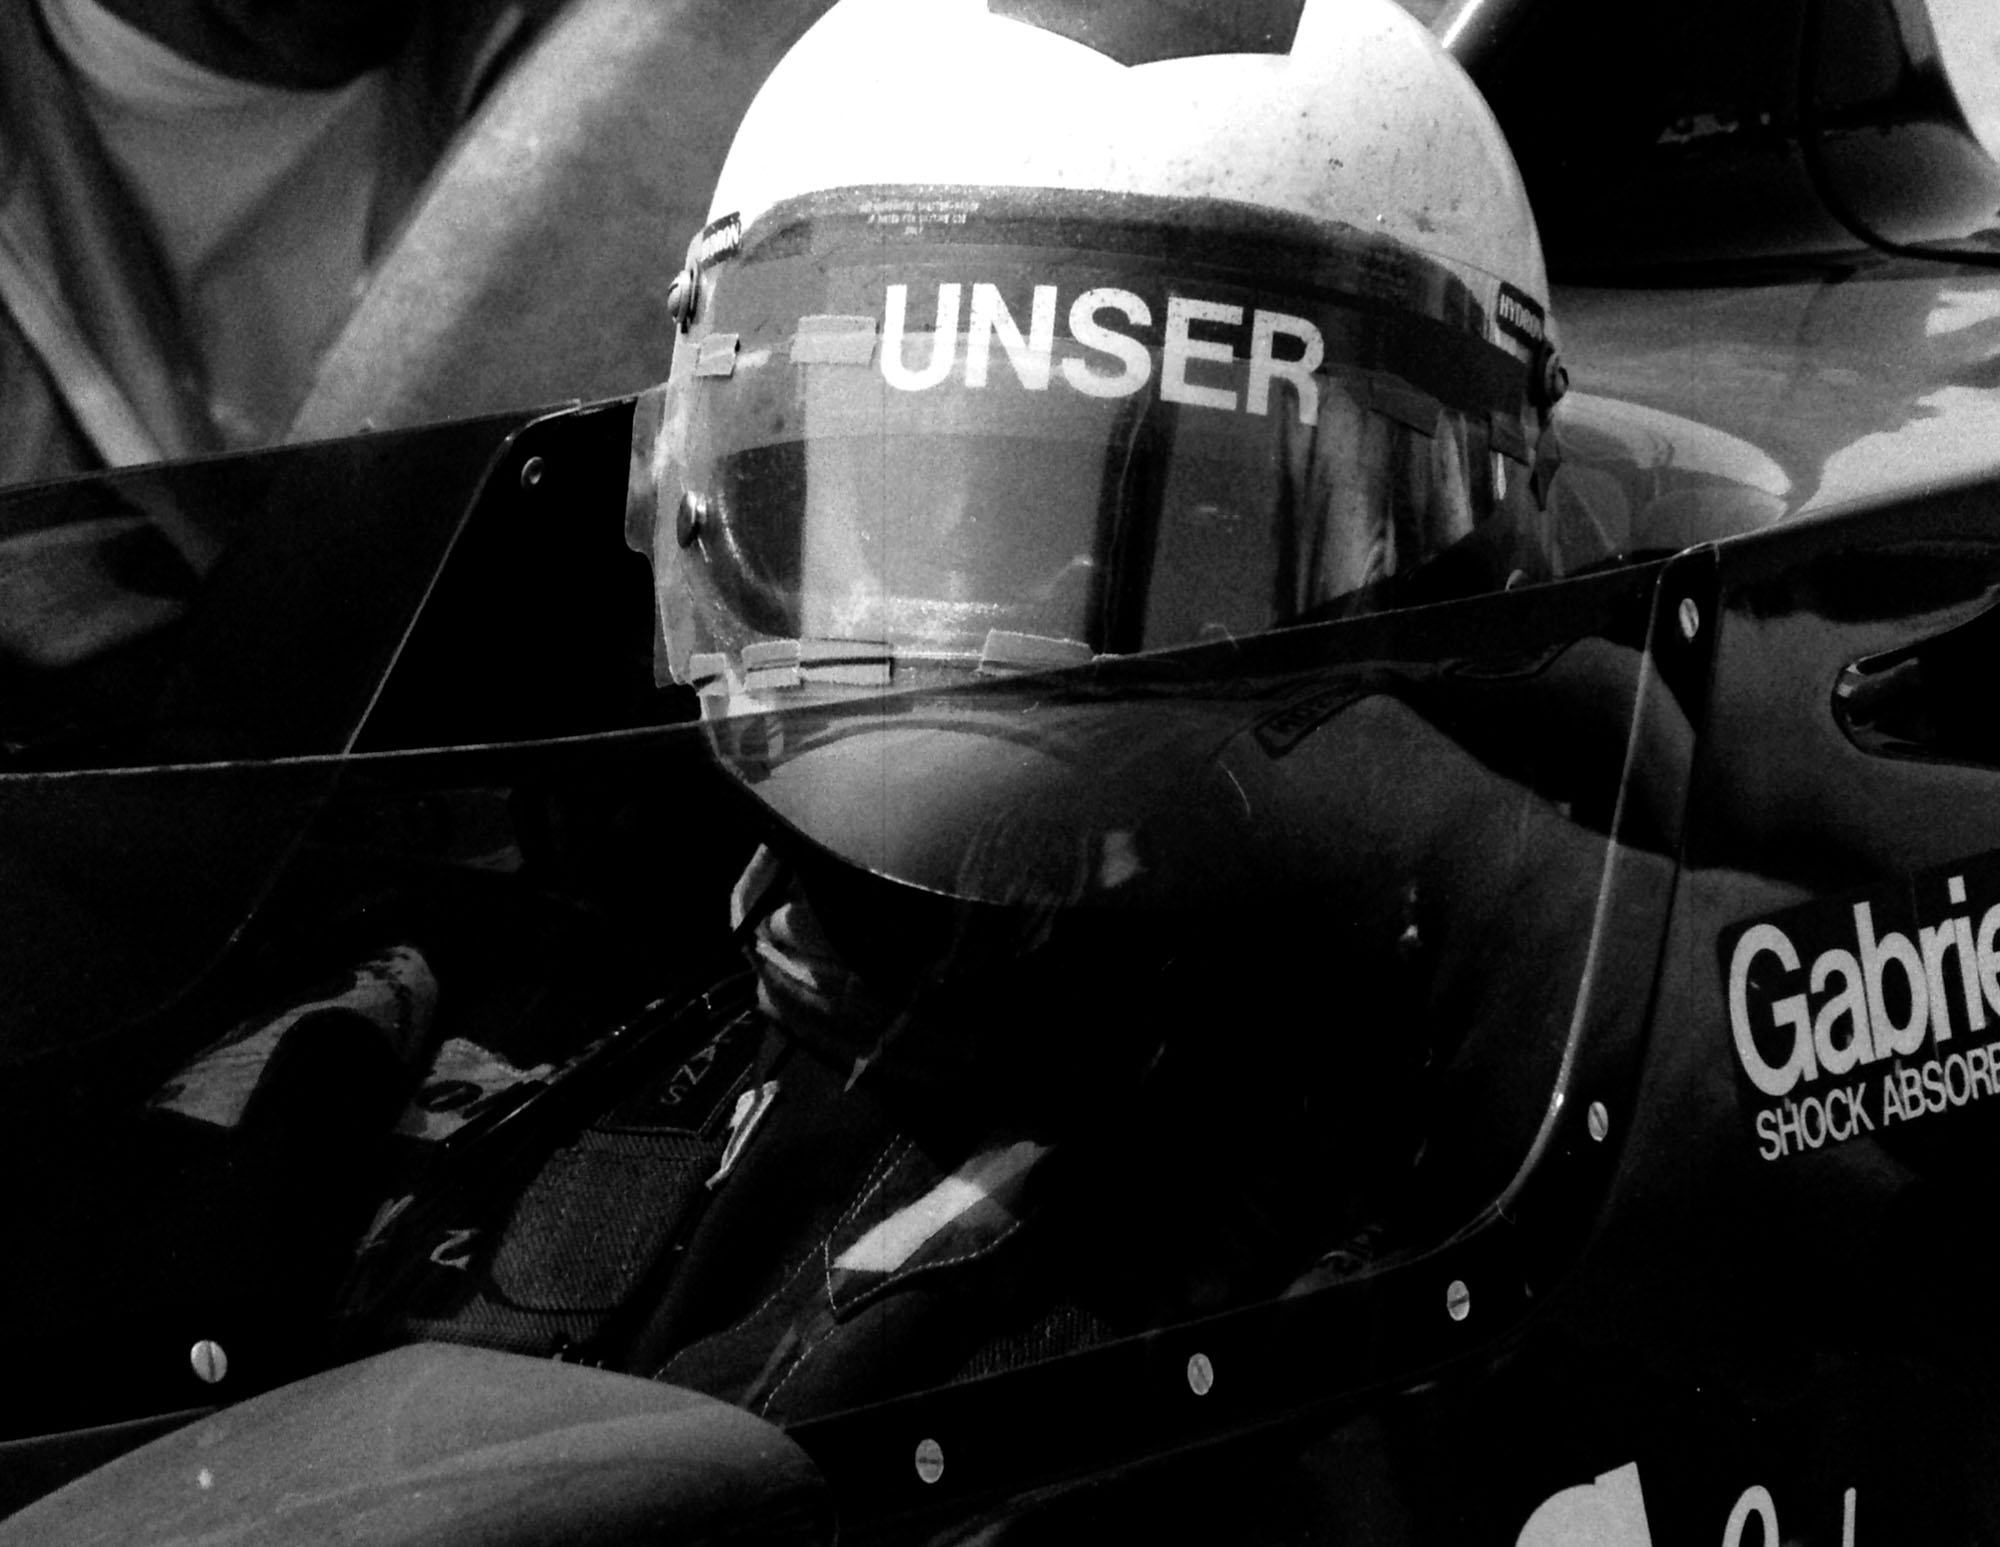 American Racing Wheels Car 21 Al Unser Up close with helmet on - Dan Carroll